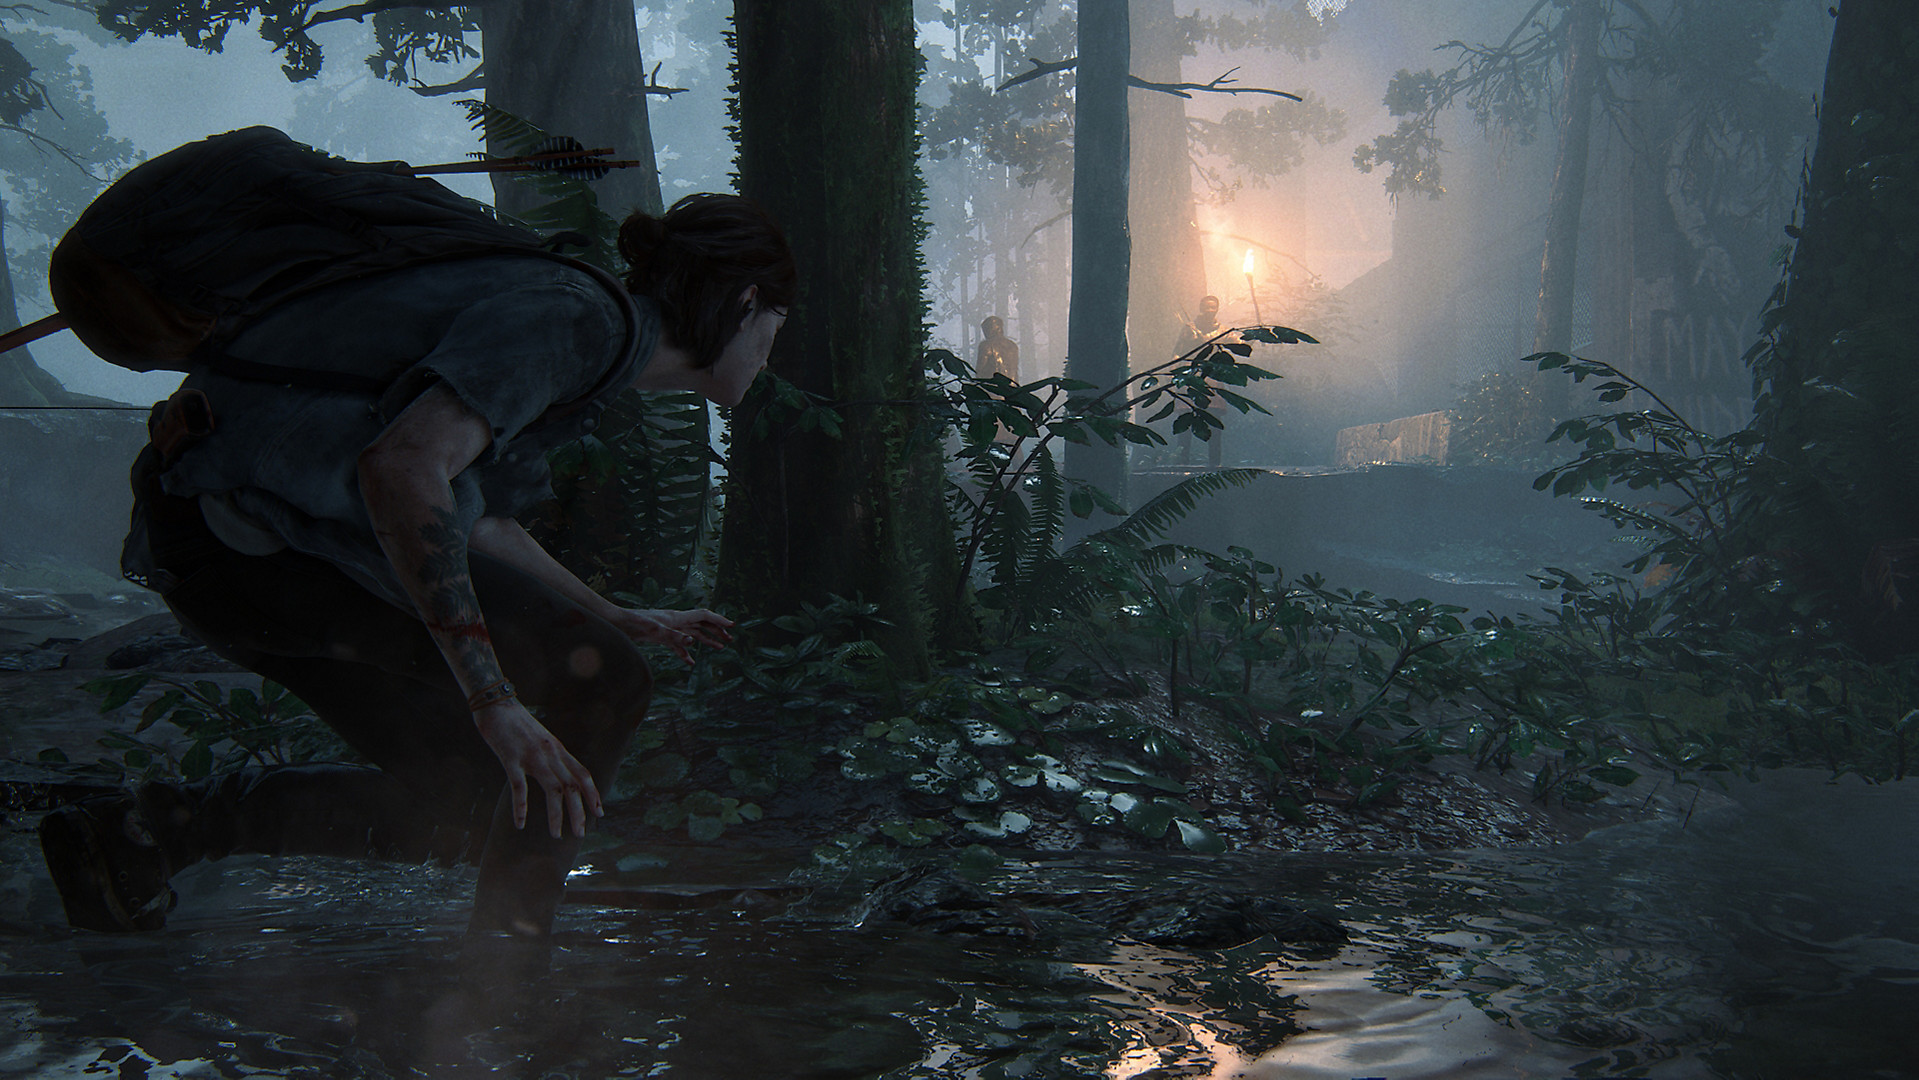 Best games of 2020 The Last of Us 2